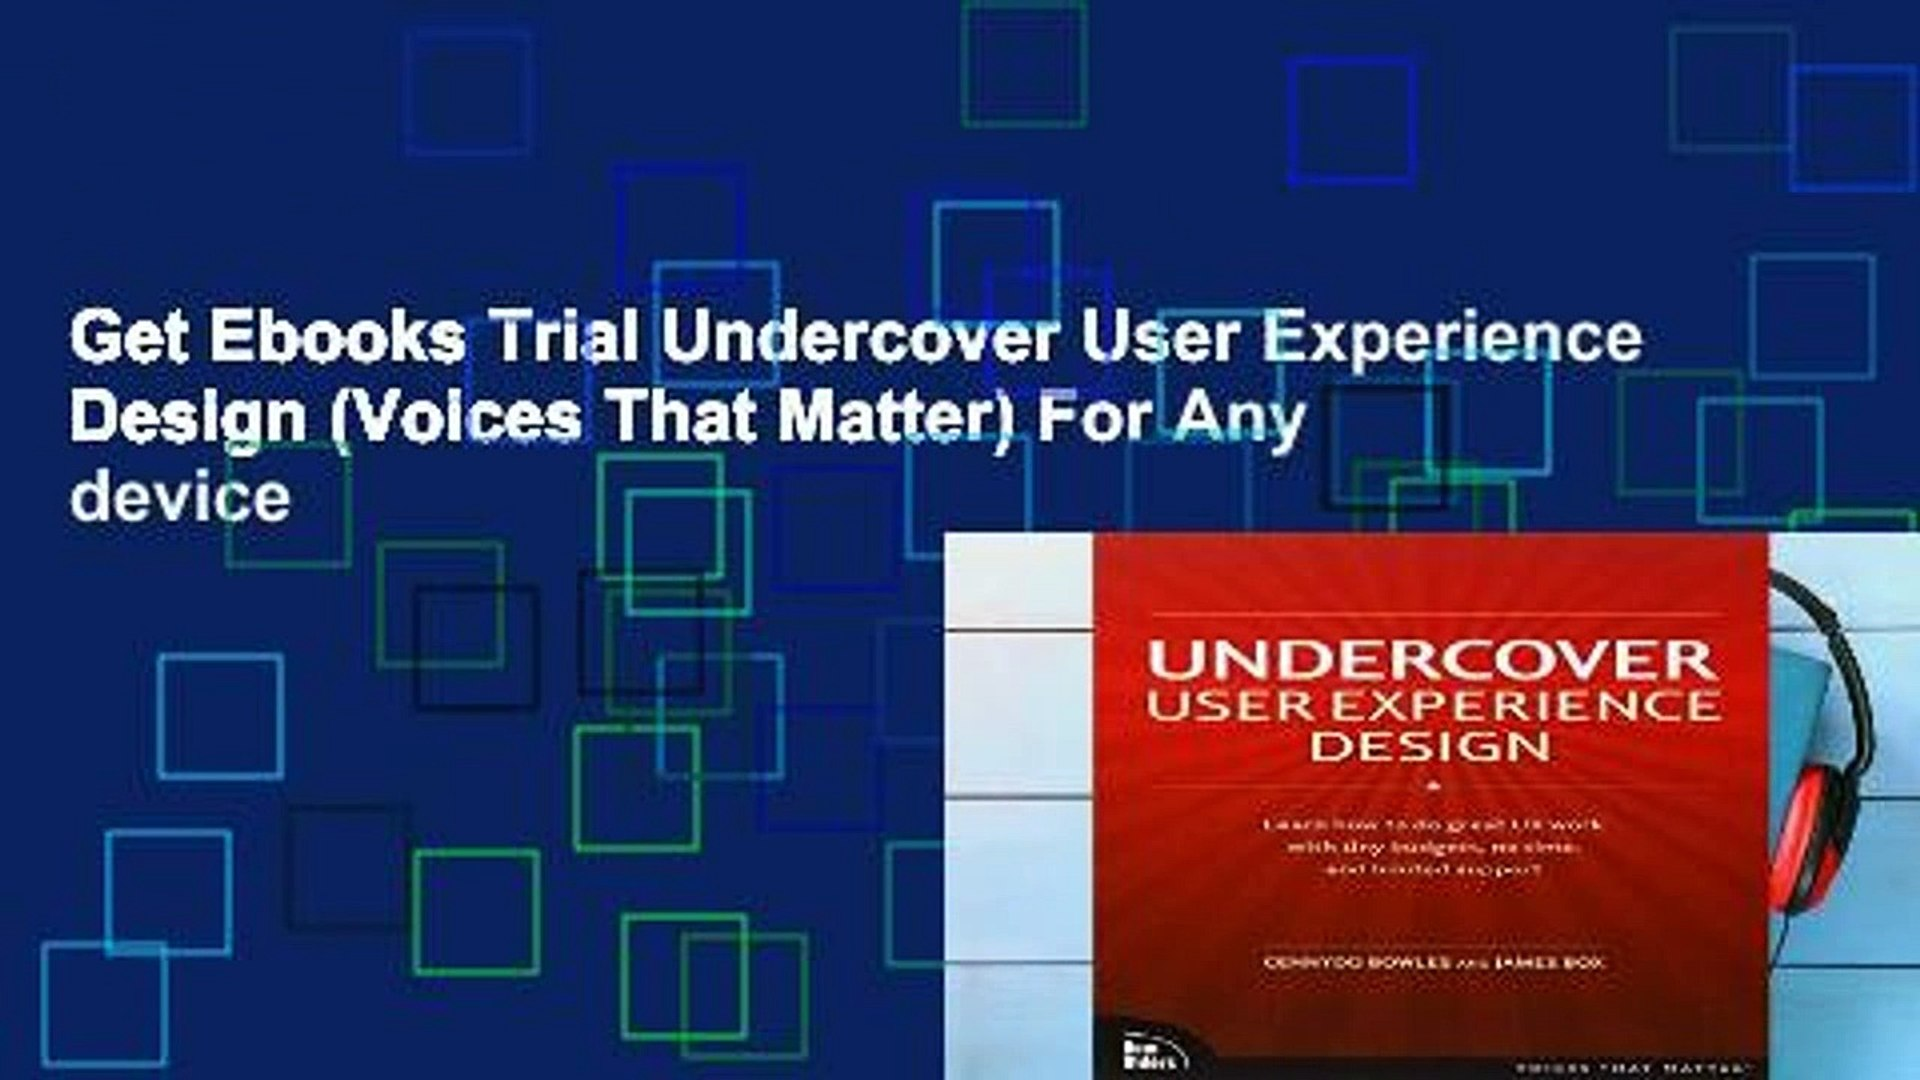 Get Ebooks Trial Undercover User Experience Design Voices That Matter For Any Device Video Dailymotion